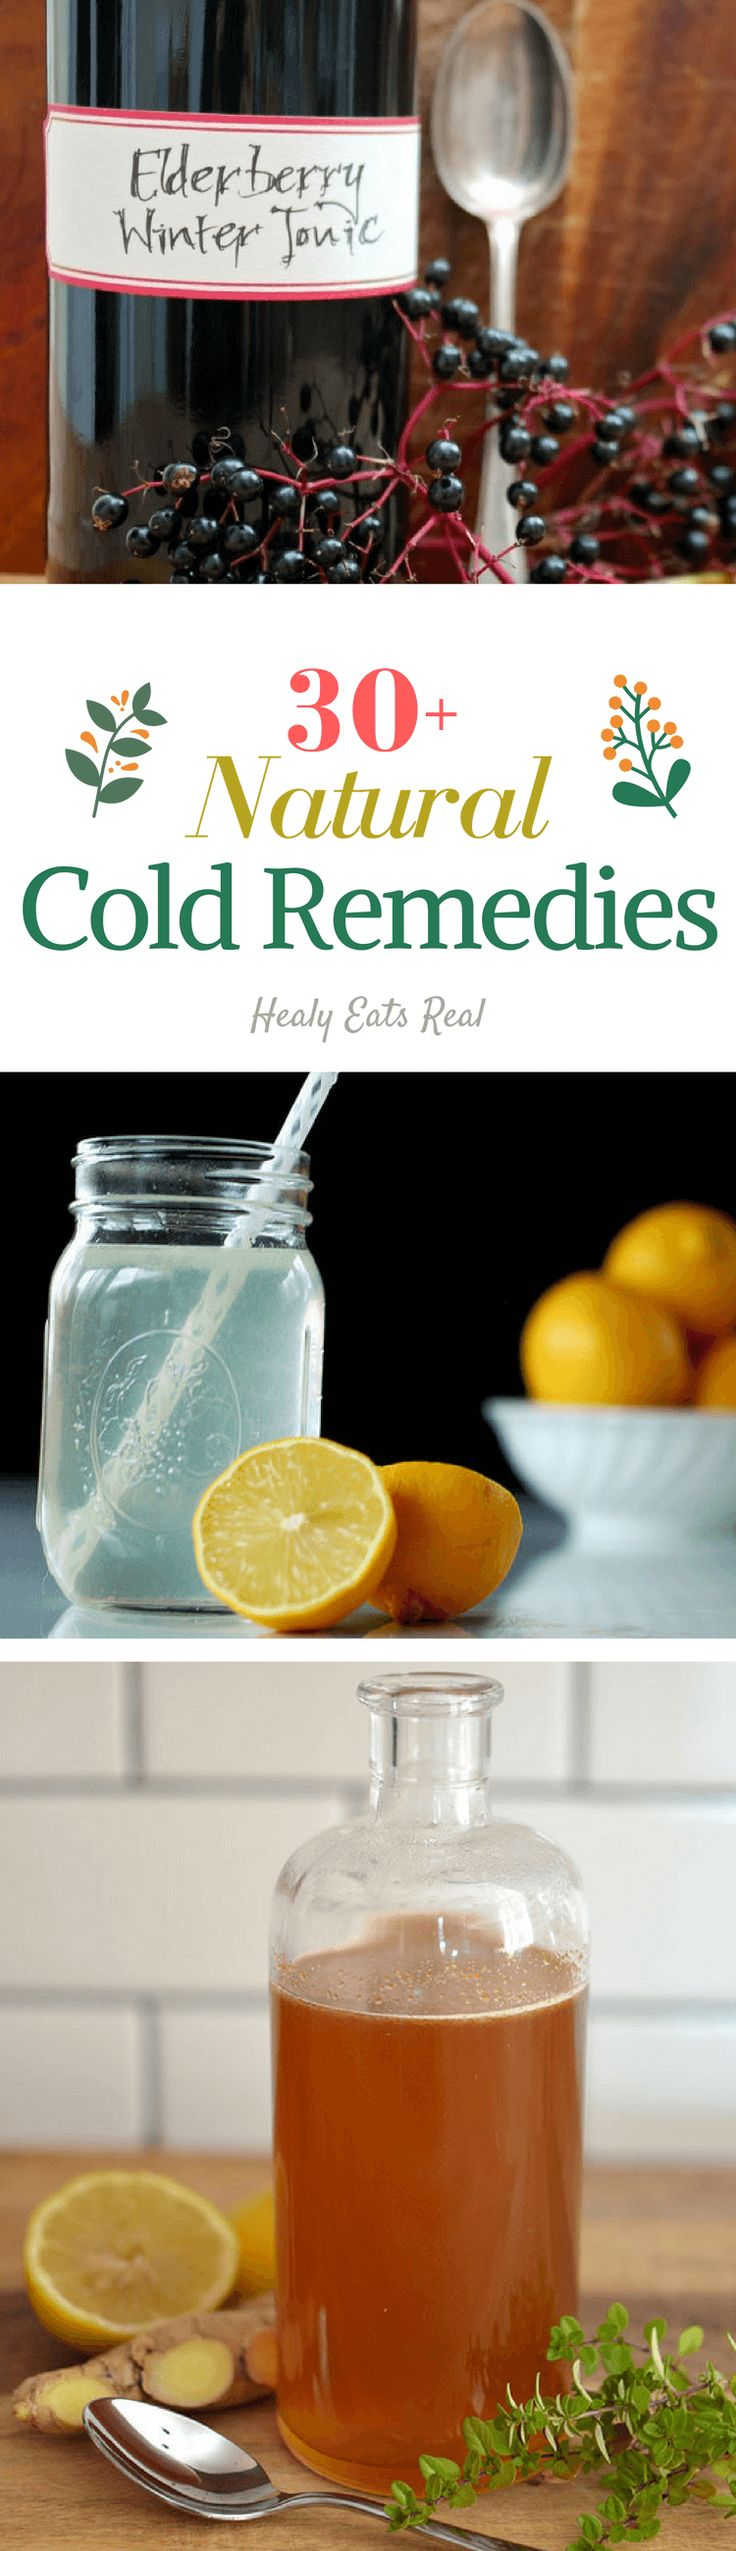 30+ Natural Cold Remedies-----Amazing list of holistic and herbal tips for coughs, colds and flu!